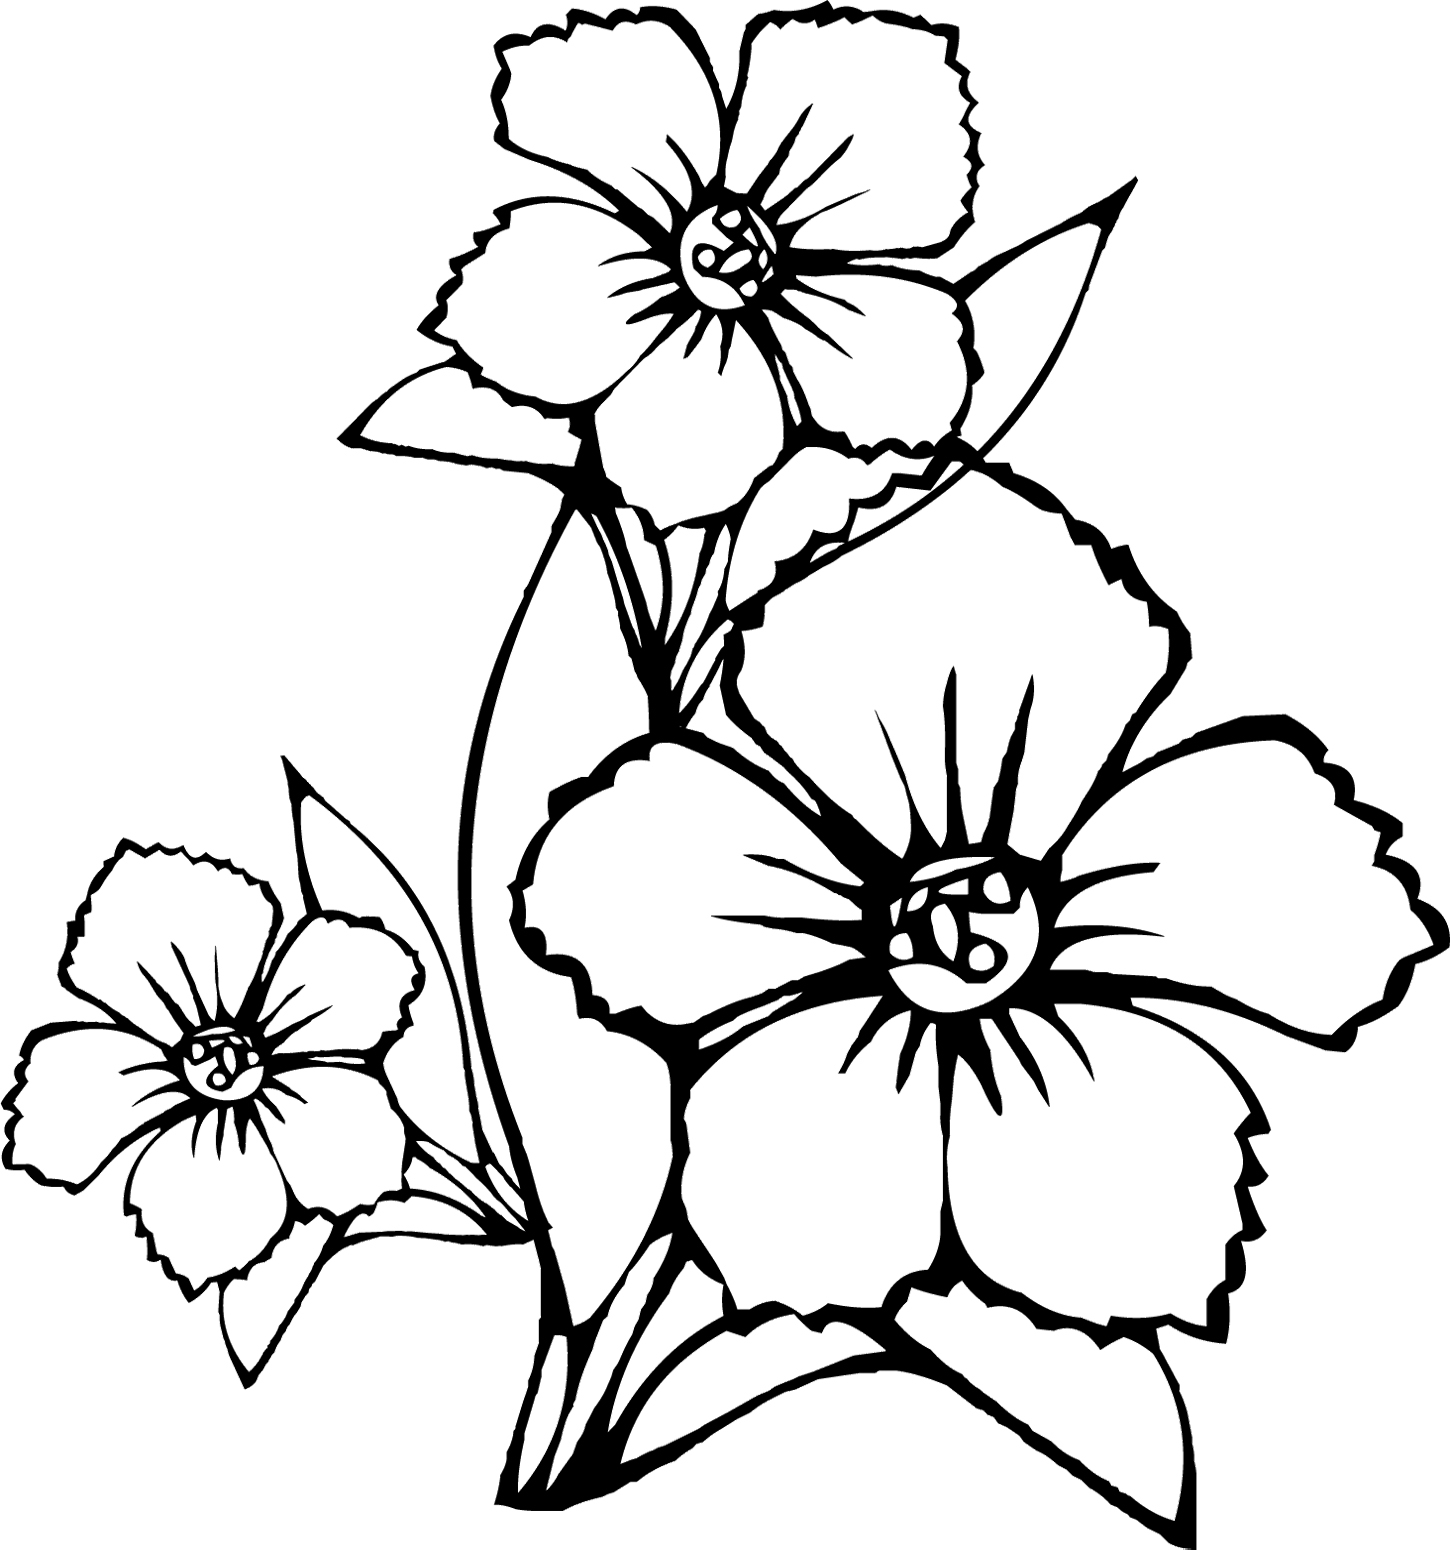 outline pictures of flowers for colouring vanilla flower drawing at getdrawings free download colouring pictures for flowers outline of